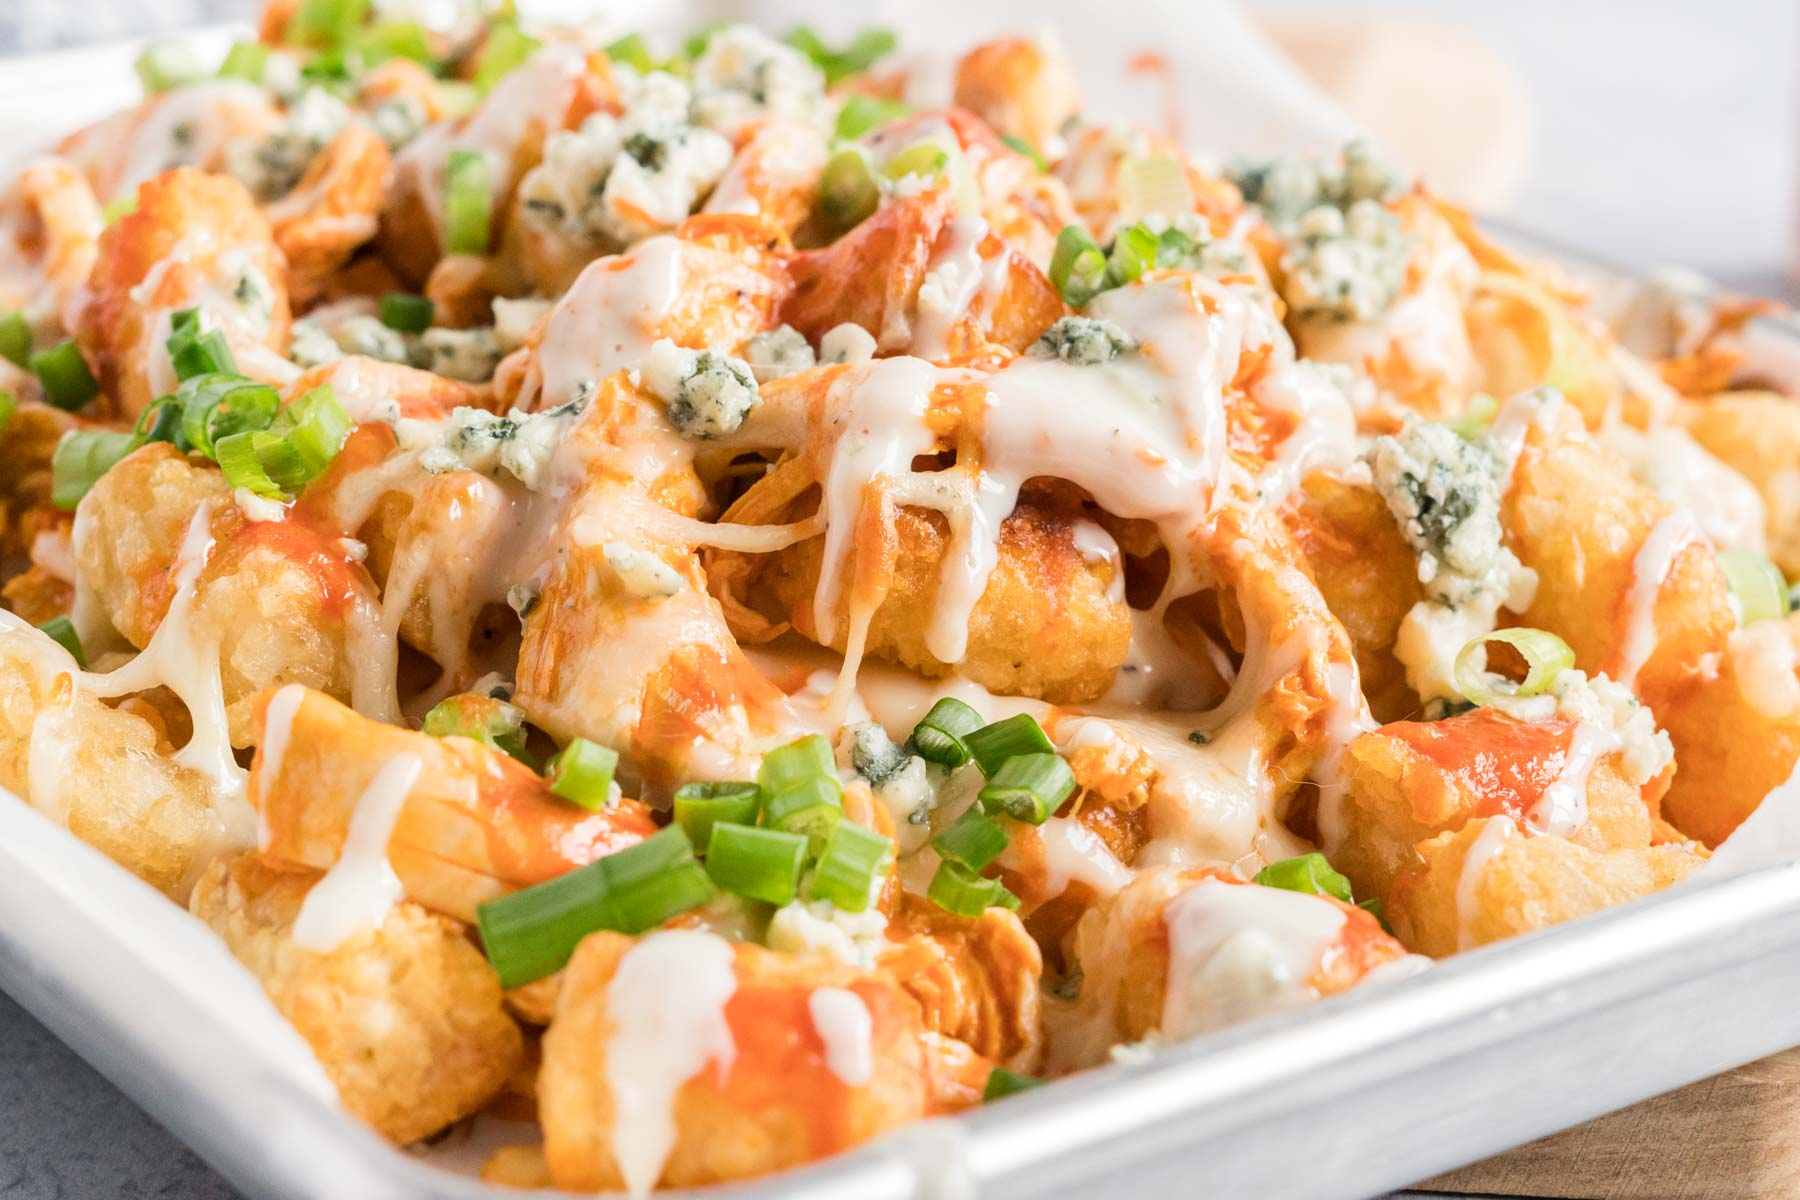 Tater tots with buffalo chicken, cheese and blue cheese dressing.